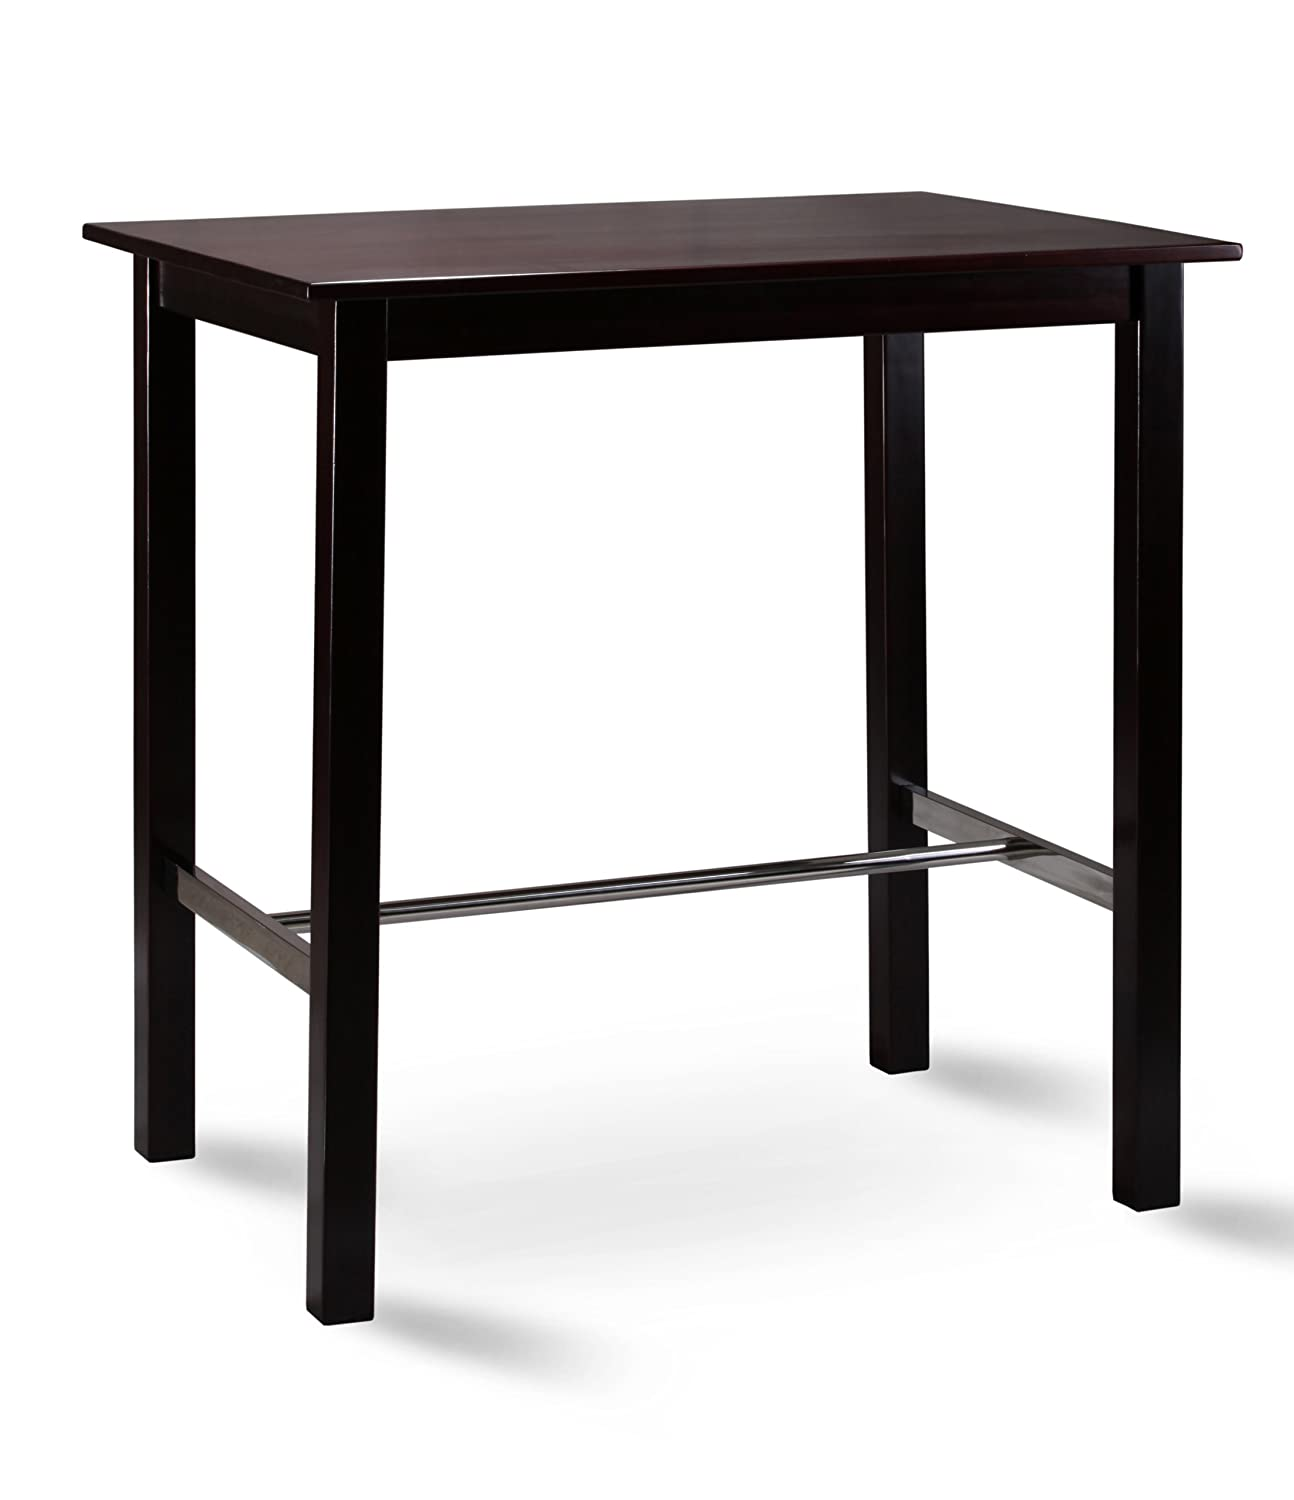 Table de bar bistro table pin massif - Couleur wengé 75x105 - BT-105-114